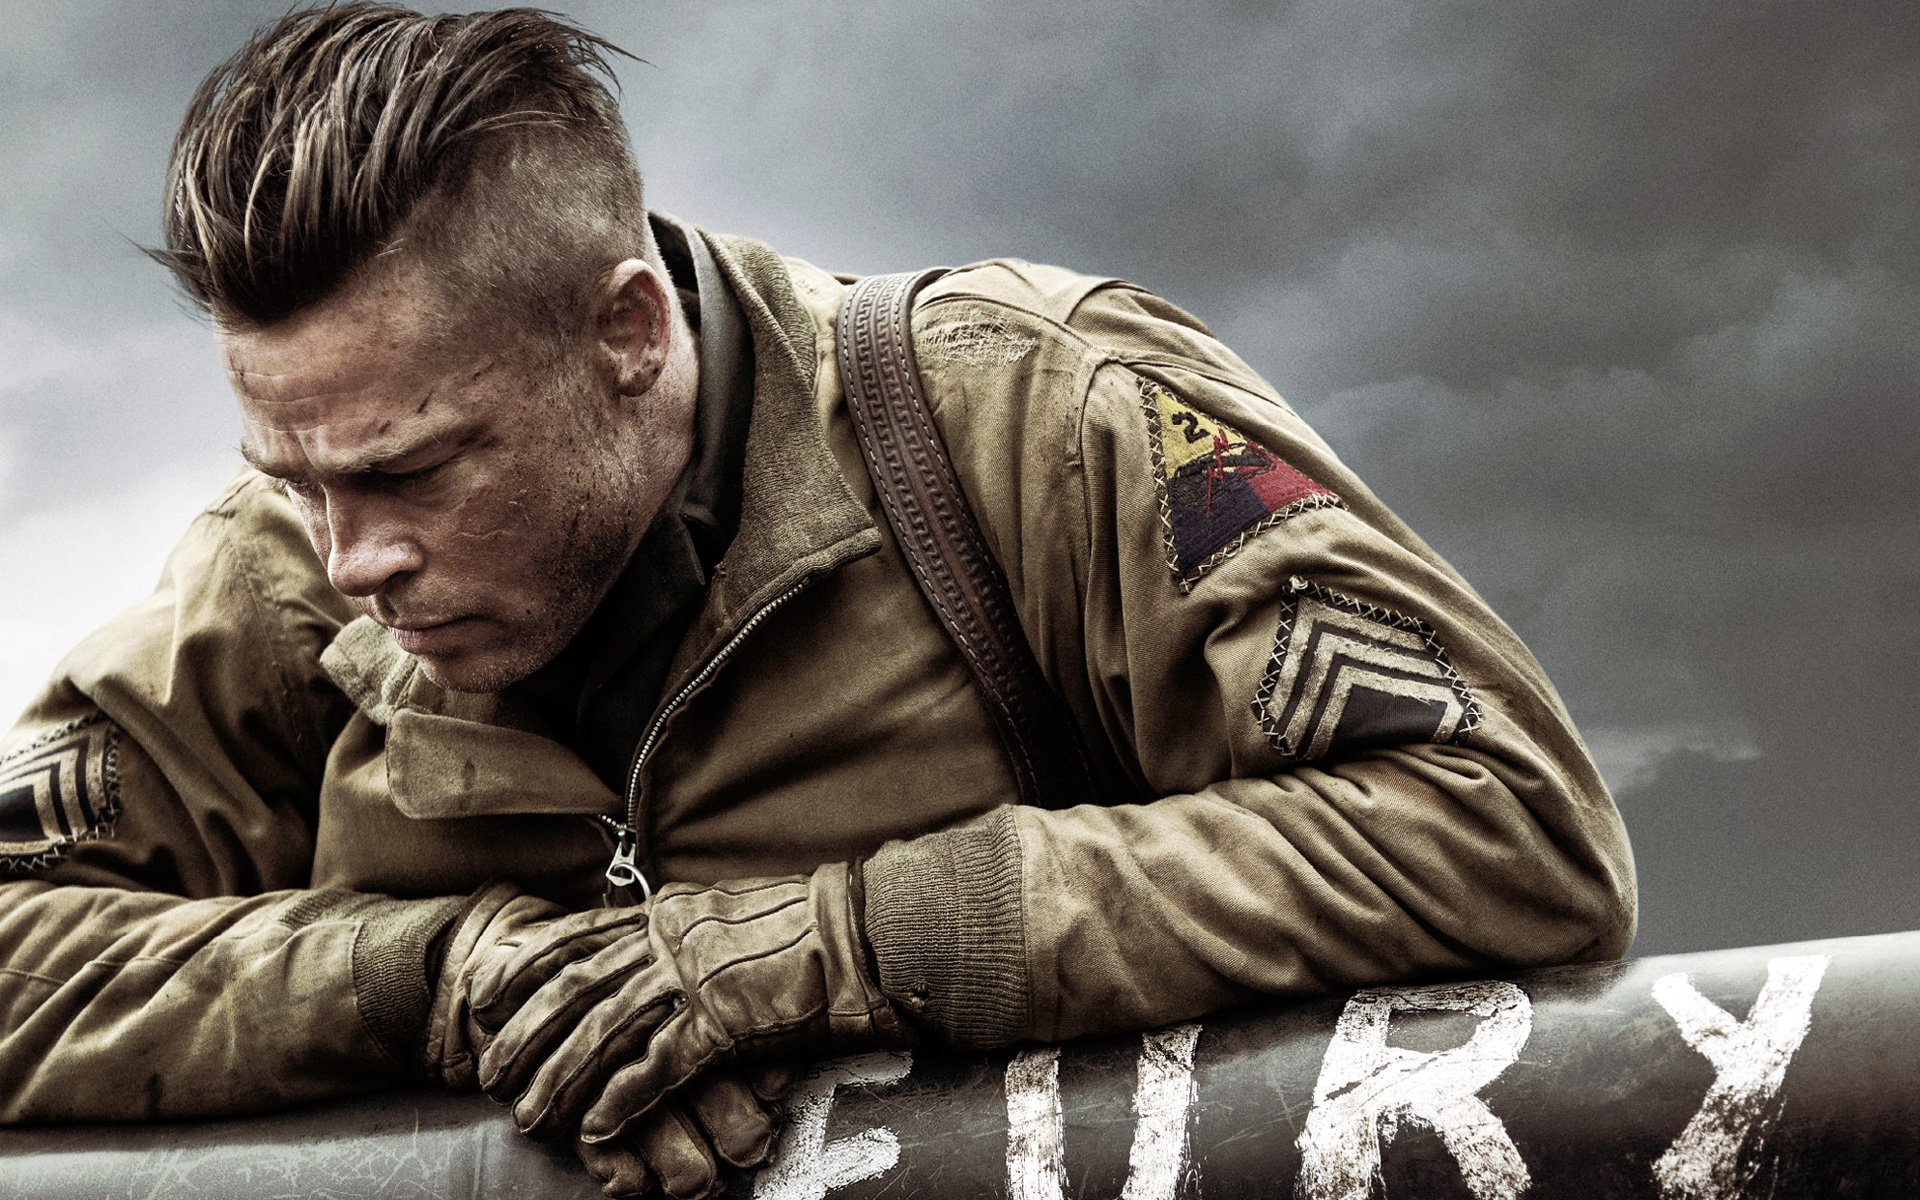 Brad Pitt in Fury 410.2 Kb